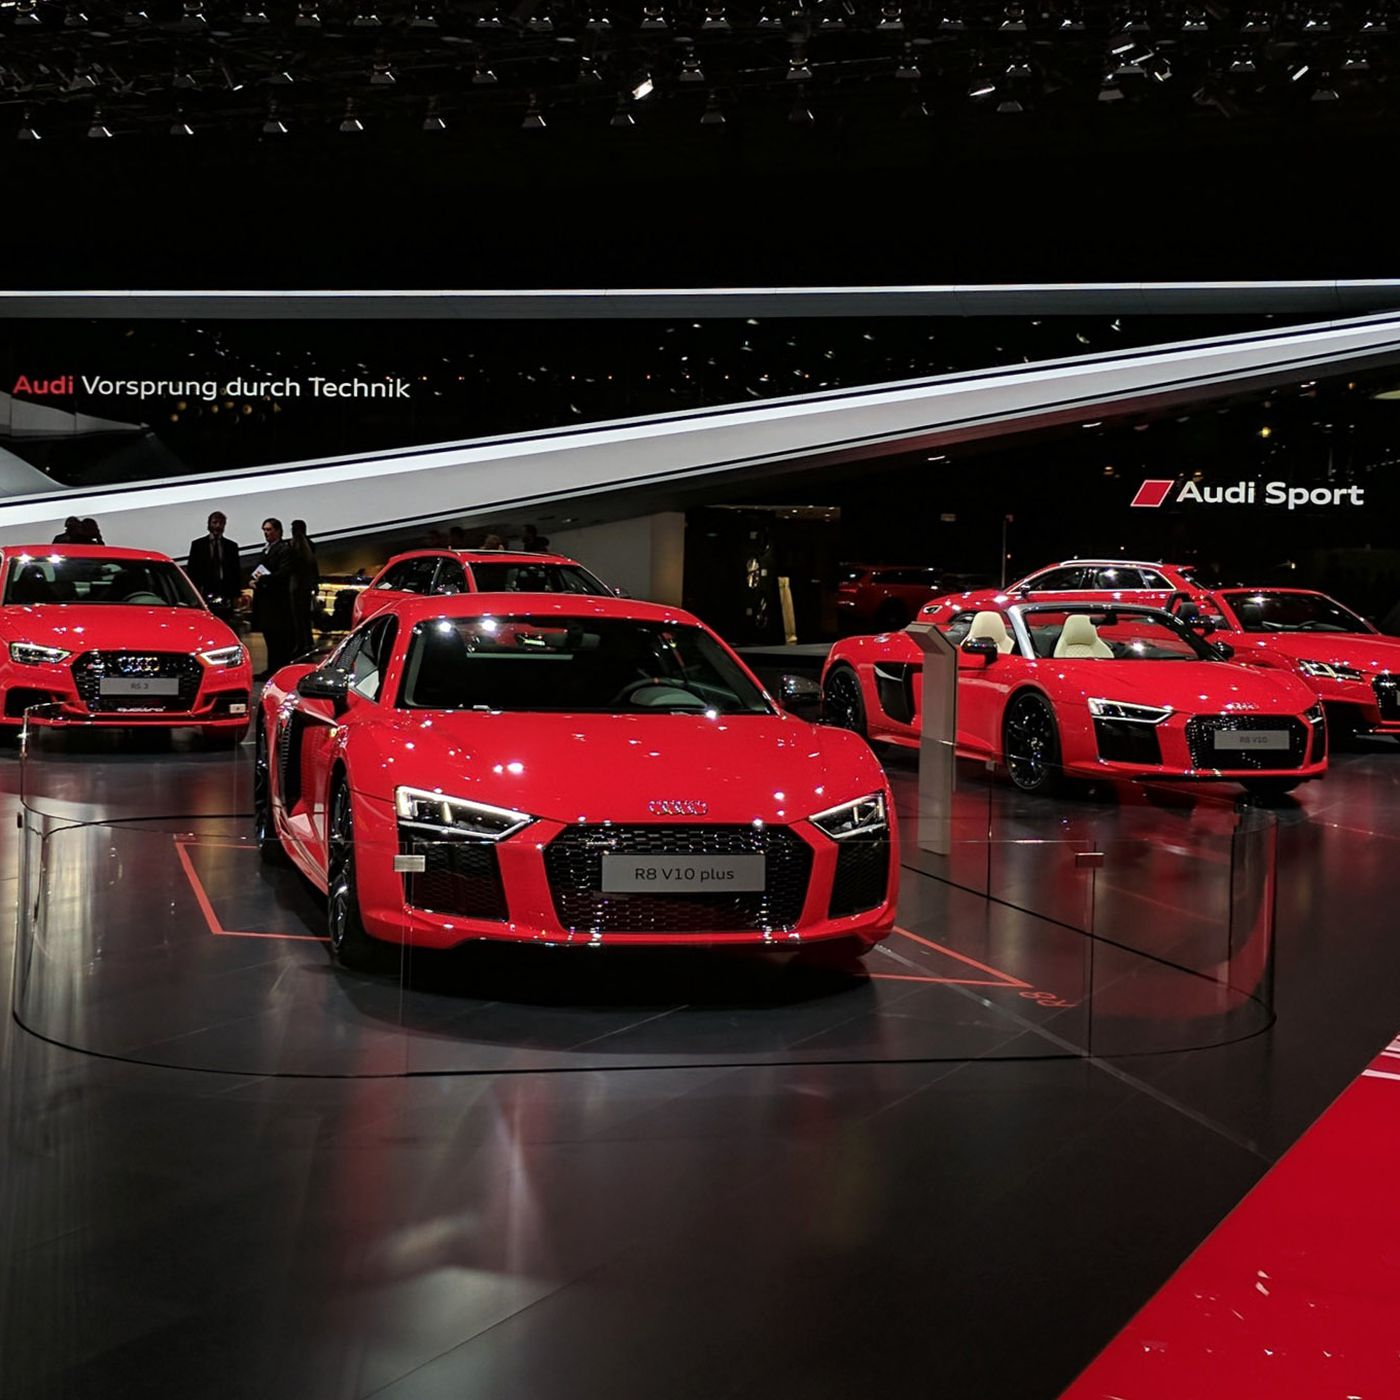 The Geneva Motor Show Has Been Overrun By Red Cars The Verge - Fun car show ideas